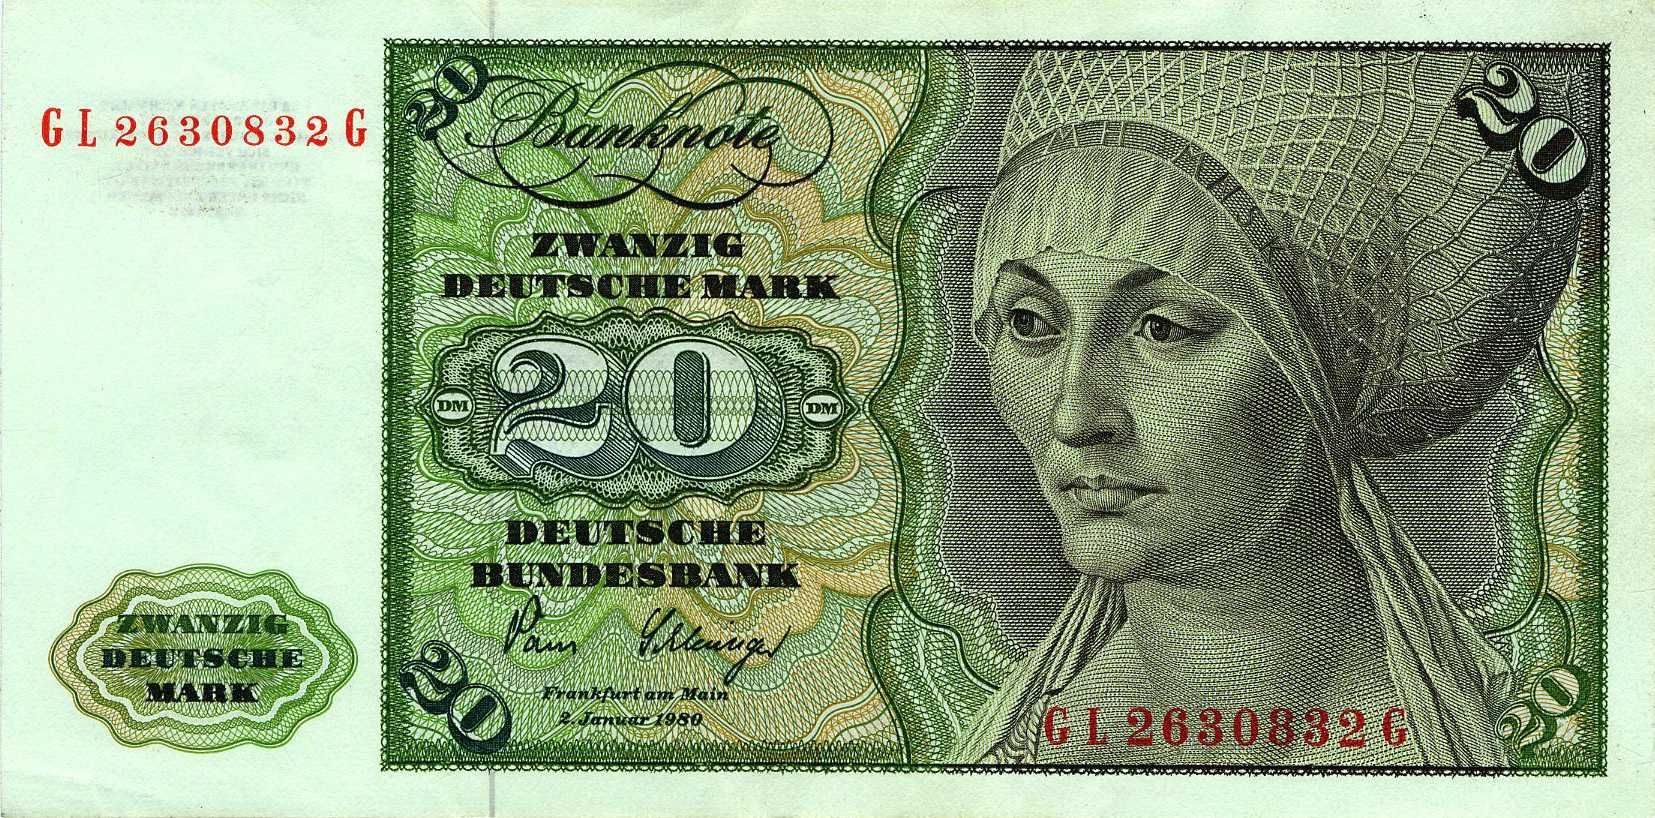 Banknote 20 Deutsche Mark Tucher 1980 Deutsche mark